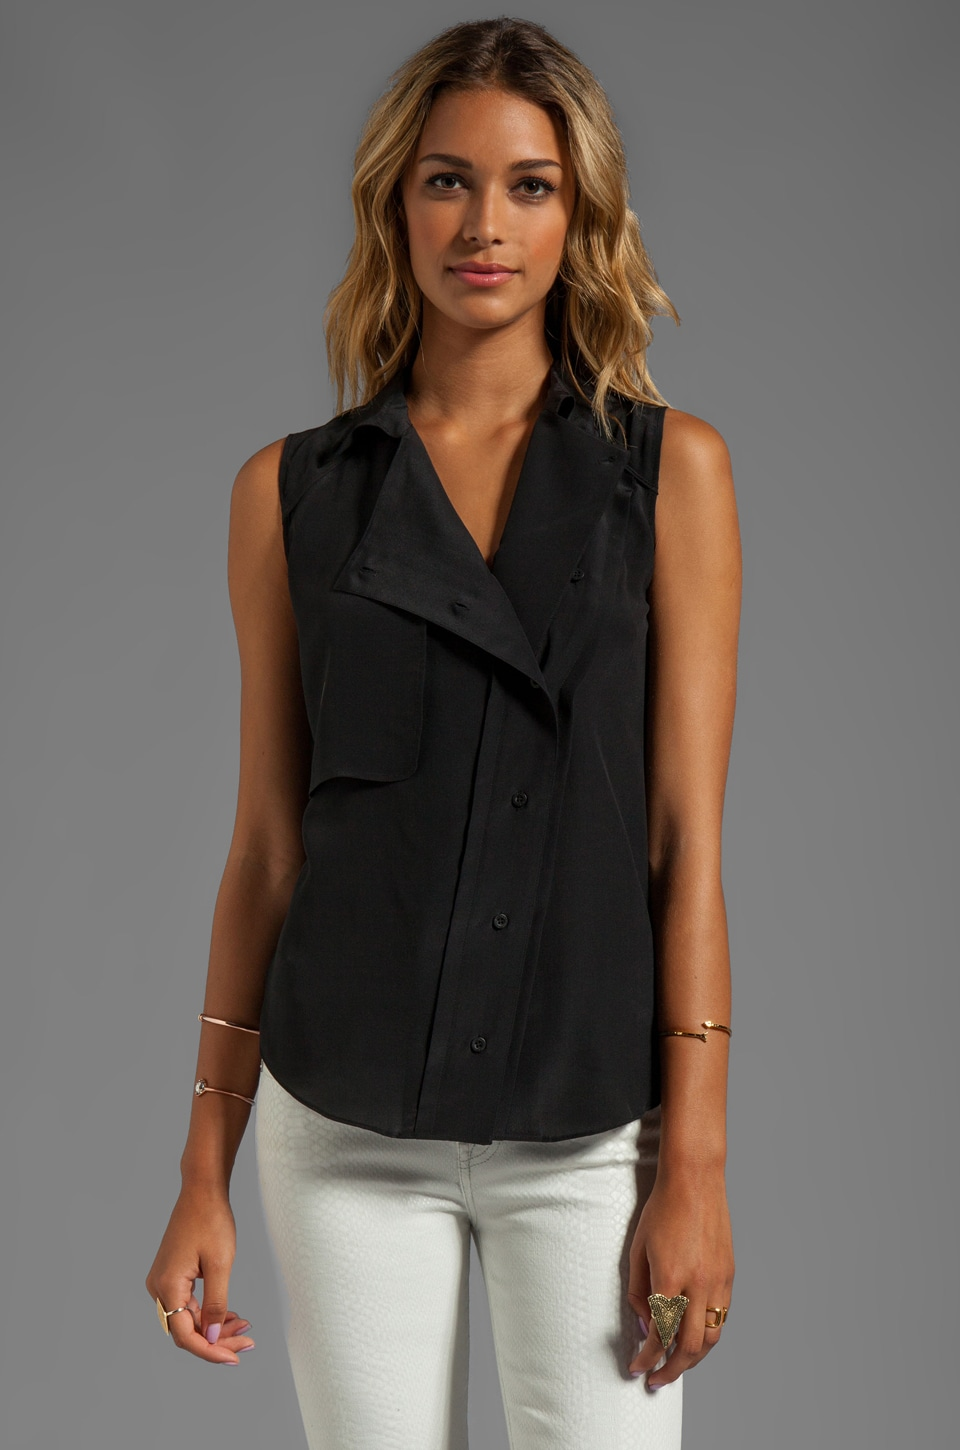 Rebecca Minkoff Pilot Top in Black